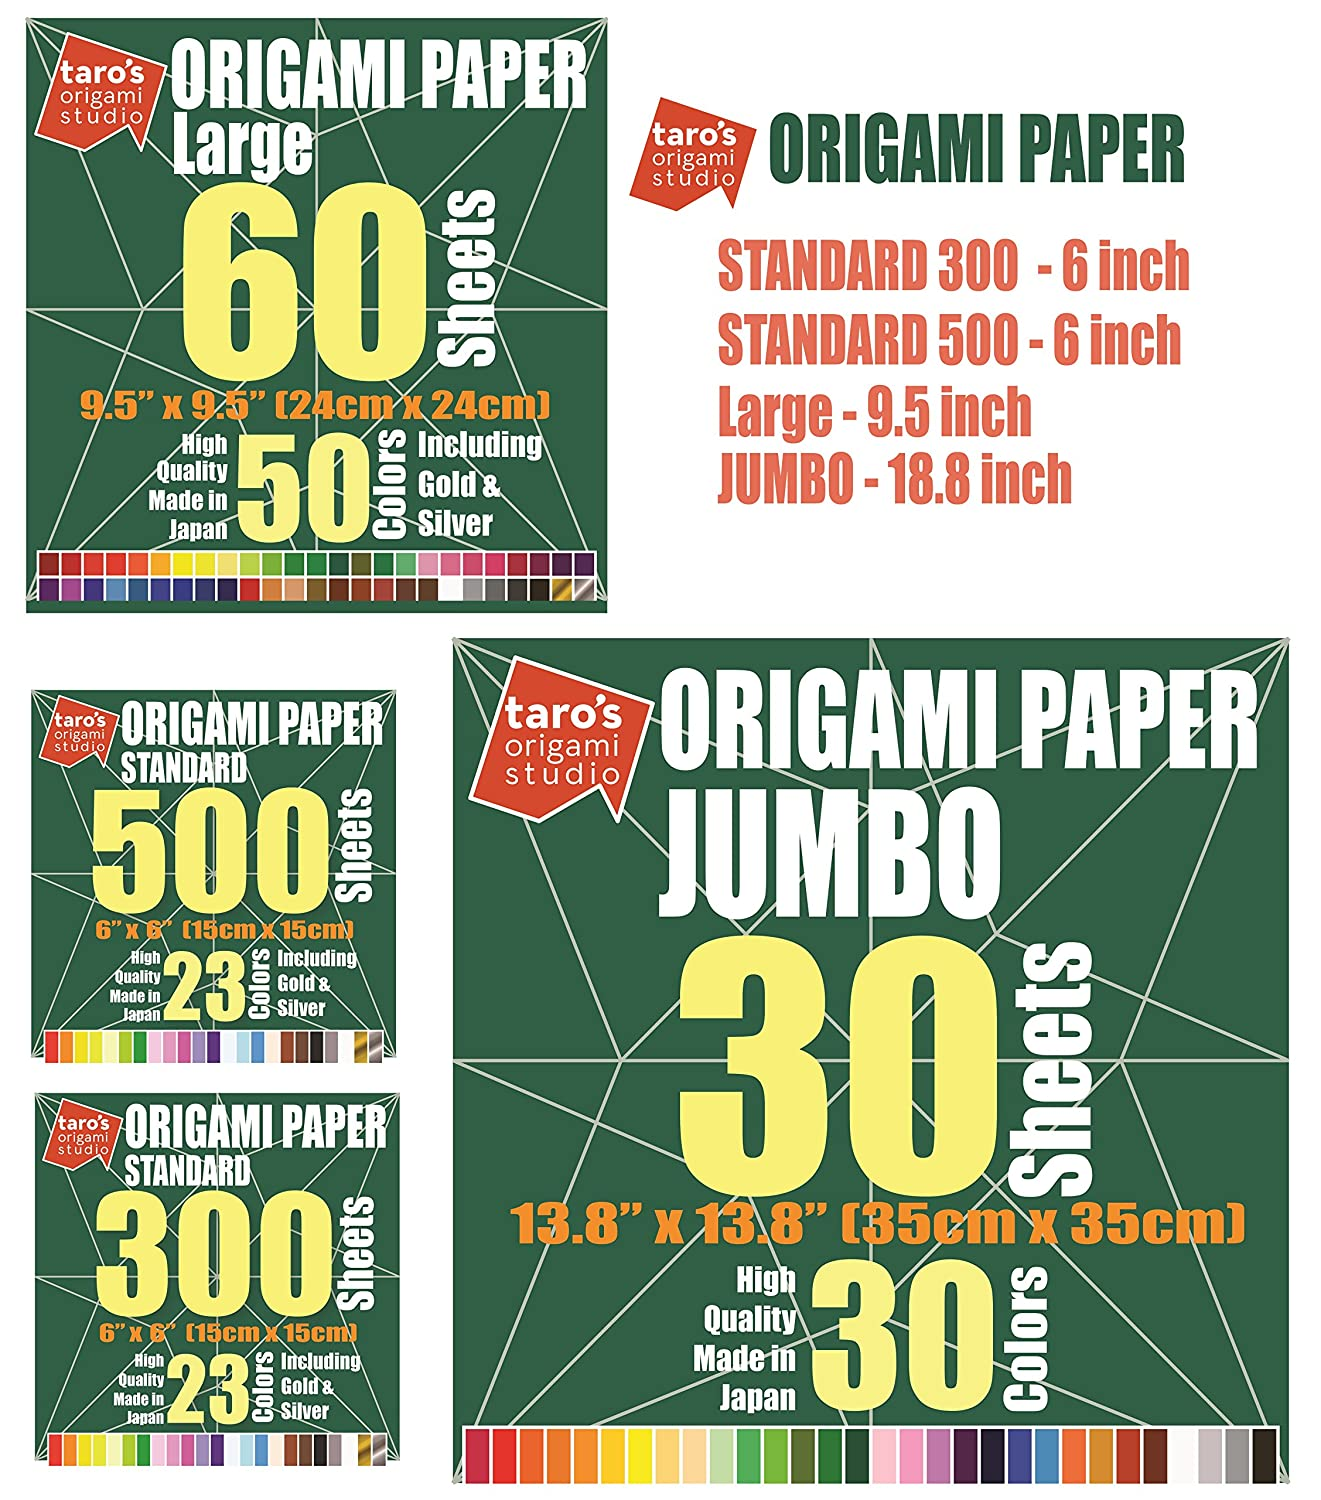 Taros Origami Studio Premium Japanese Origami Paper Large 9.5 inch Made in Japan 9.5 inch, 60 Sheets, Single Side 50 Colors Including Gold and Silver